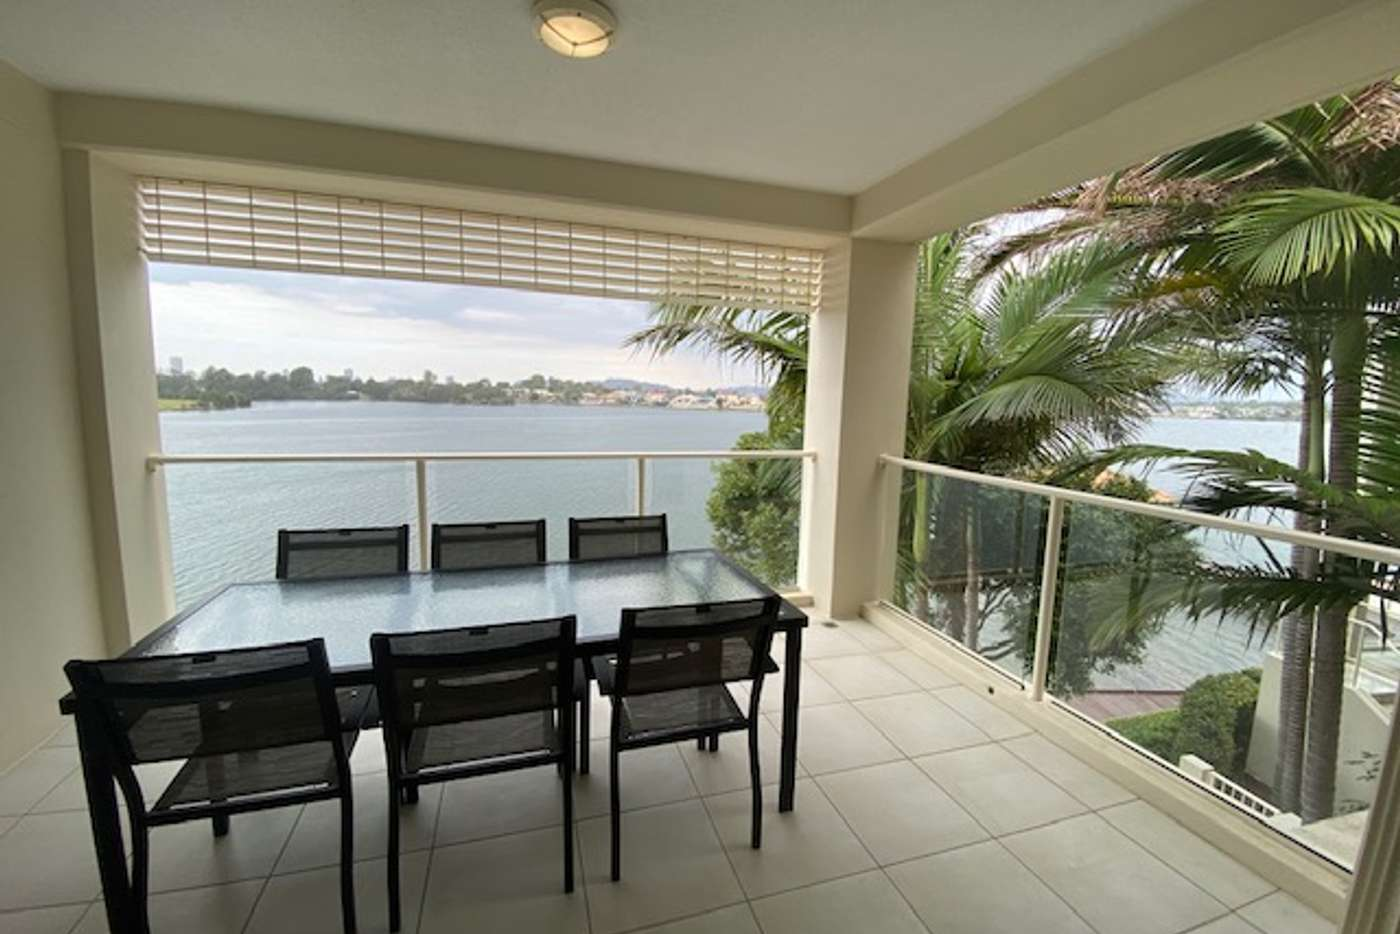 Sixth view of Homely apartment listing, 166/251 Varsity Pde, Varsity Lakes QLD 4227